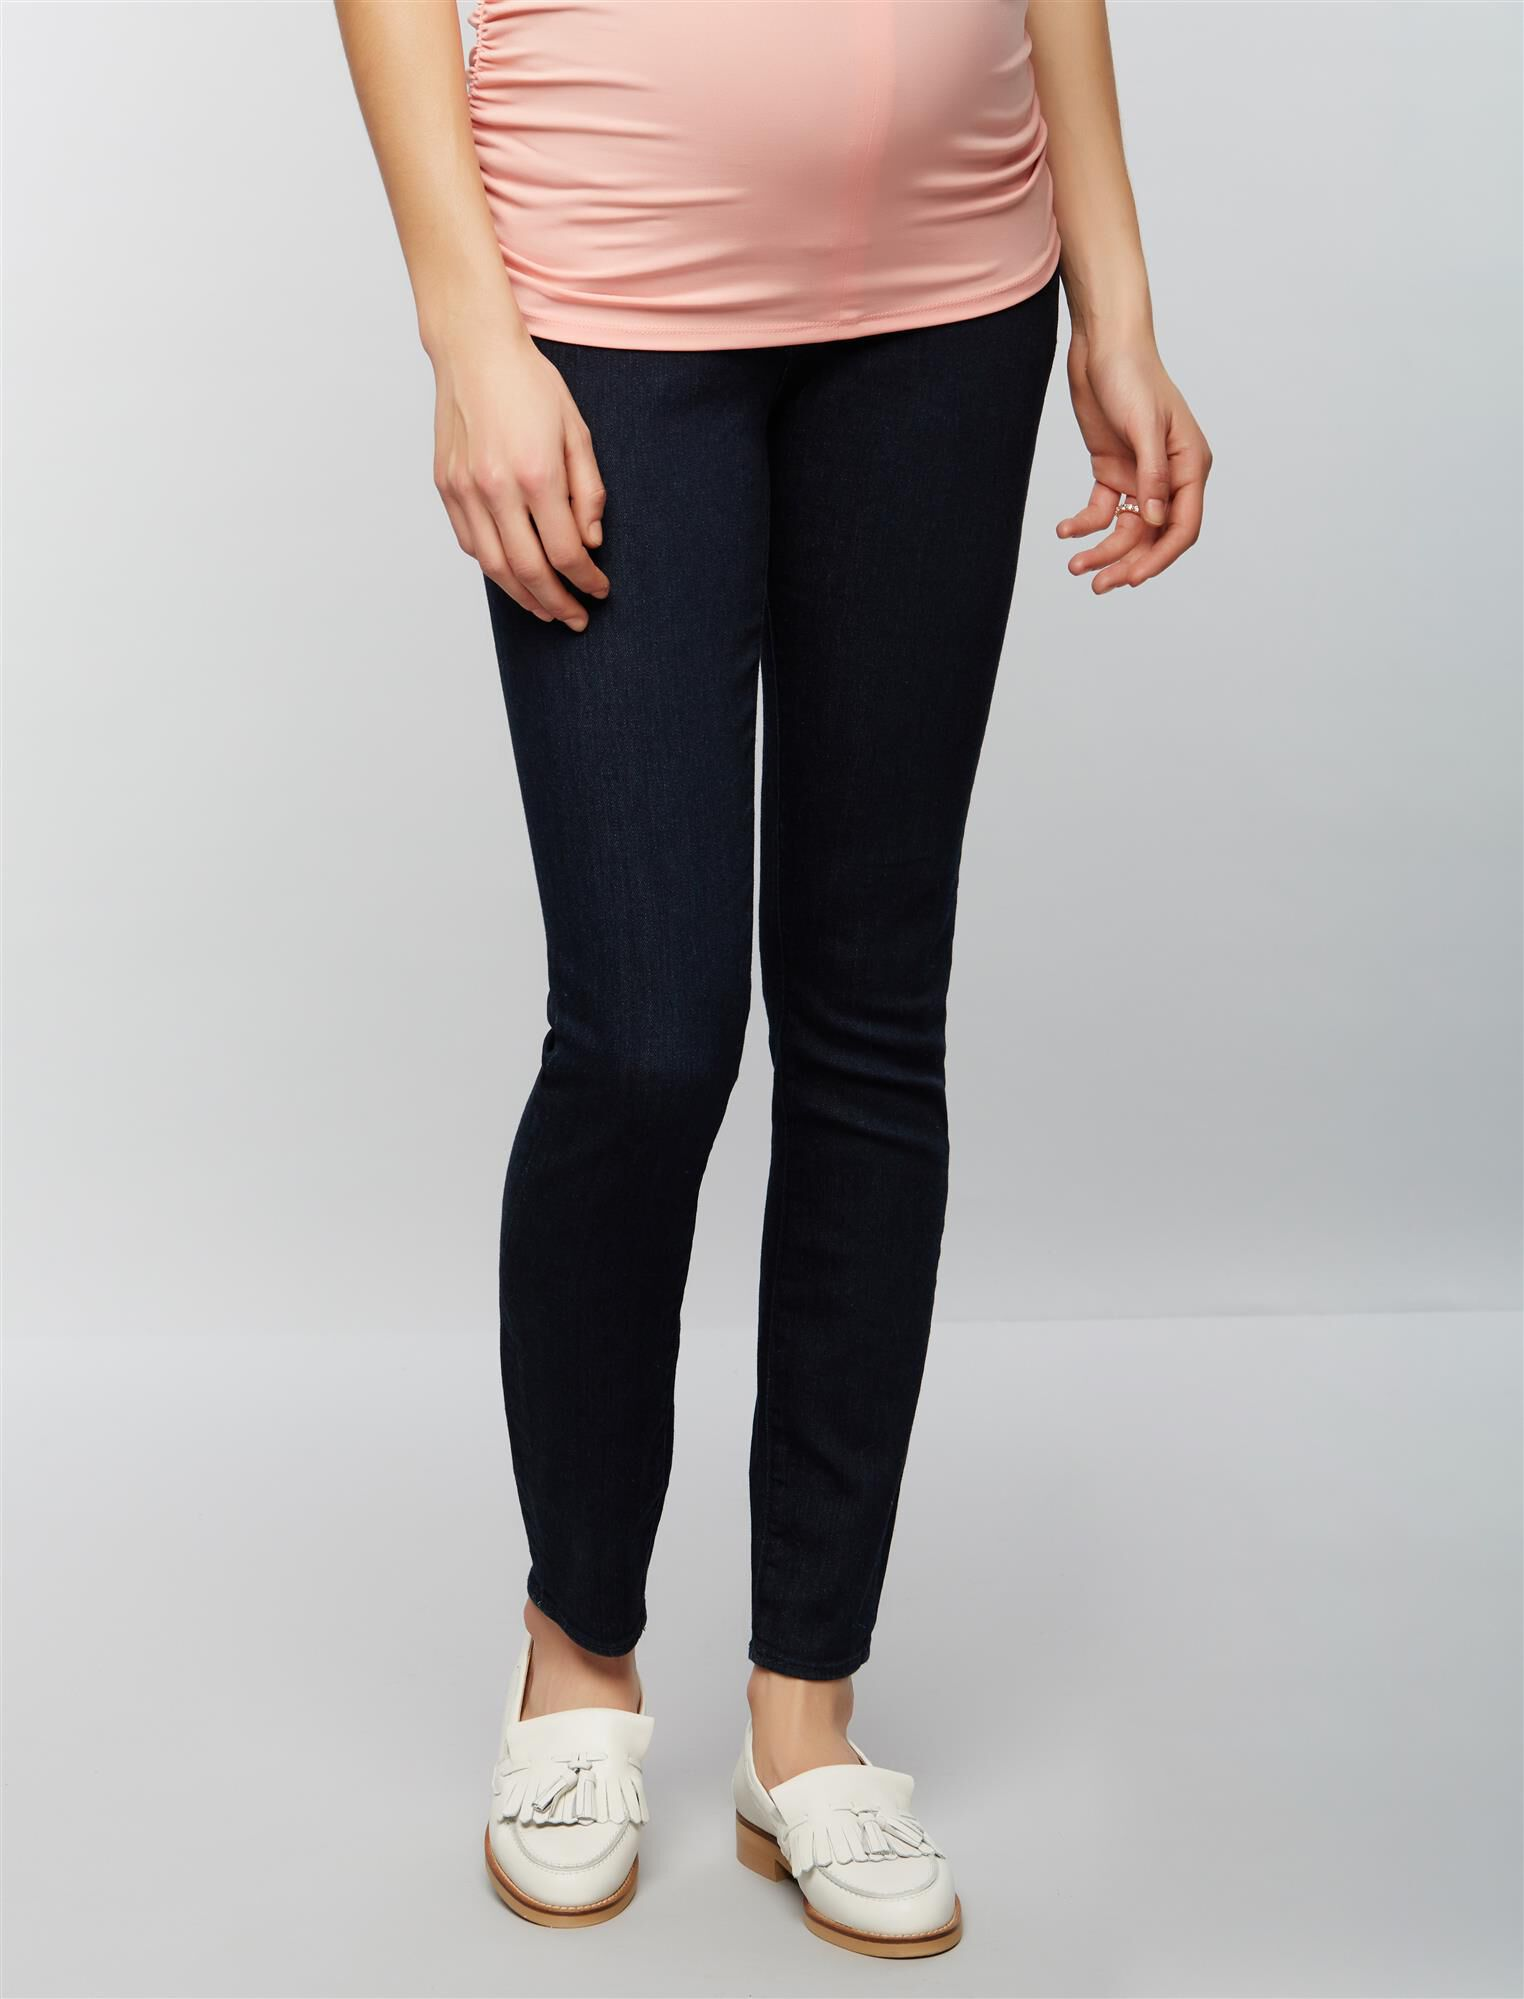 Articles Of Society Secret Fit Belly Sarah Maternity Jeans- Dark Wash